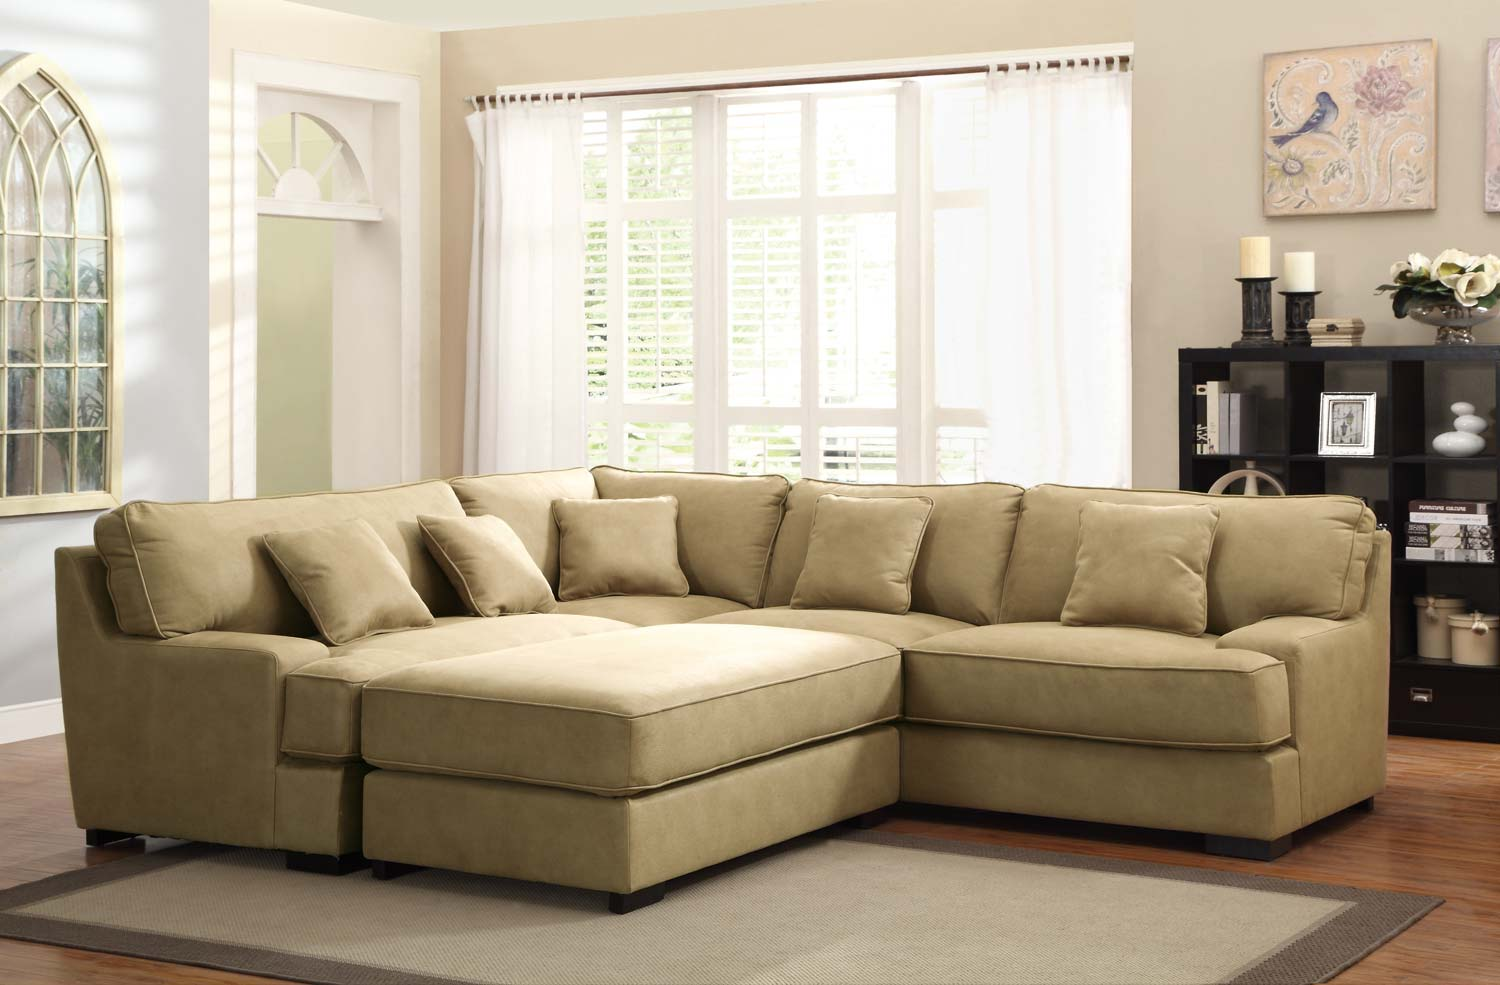 Homelegance minnis sectional sofa set beige u9759nf sect for Beiges sofa welche wandfarbe